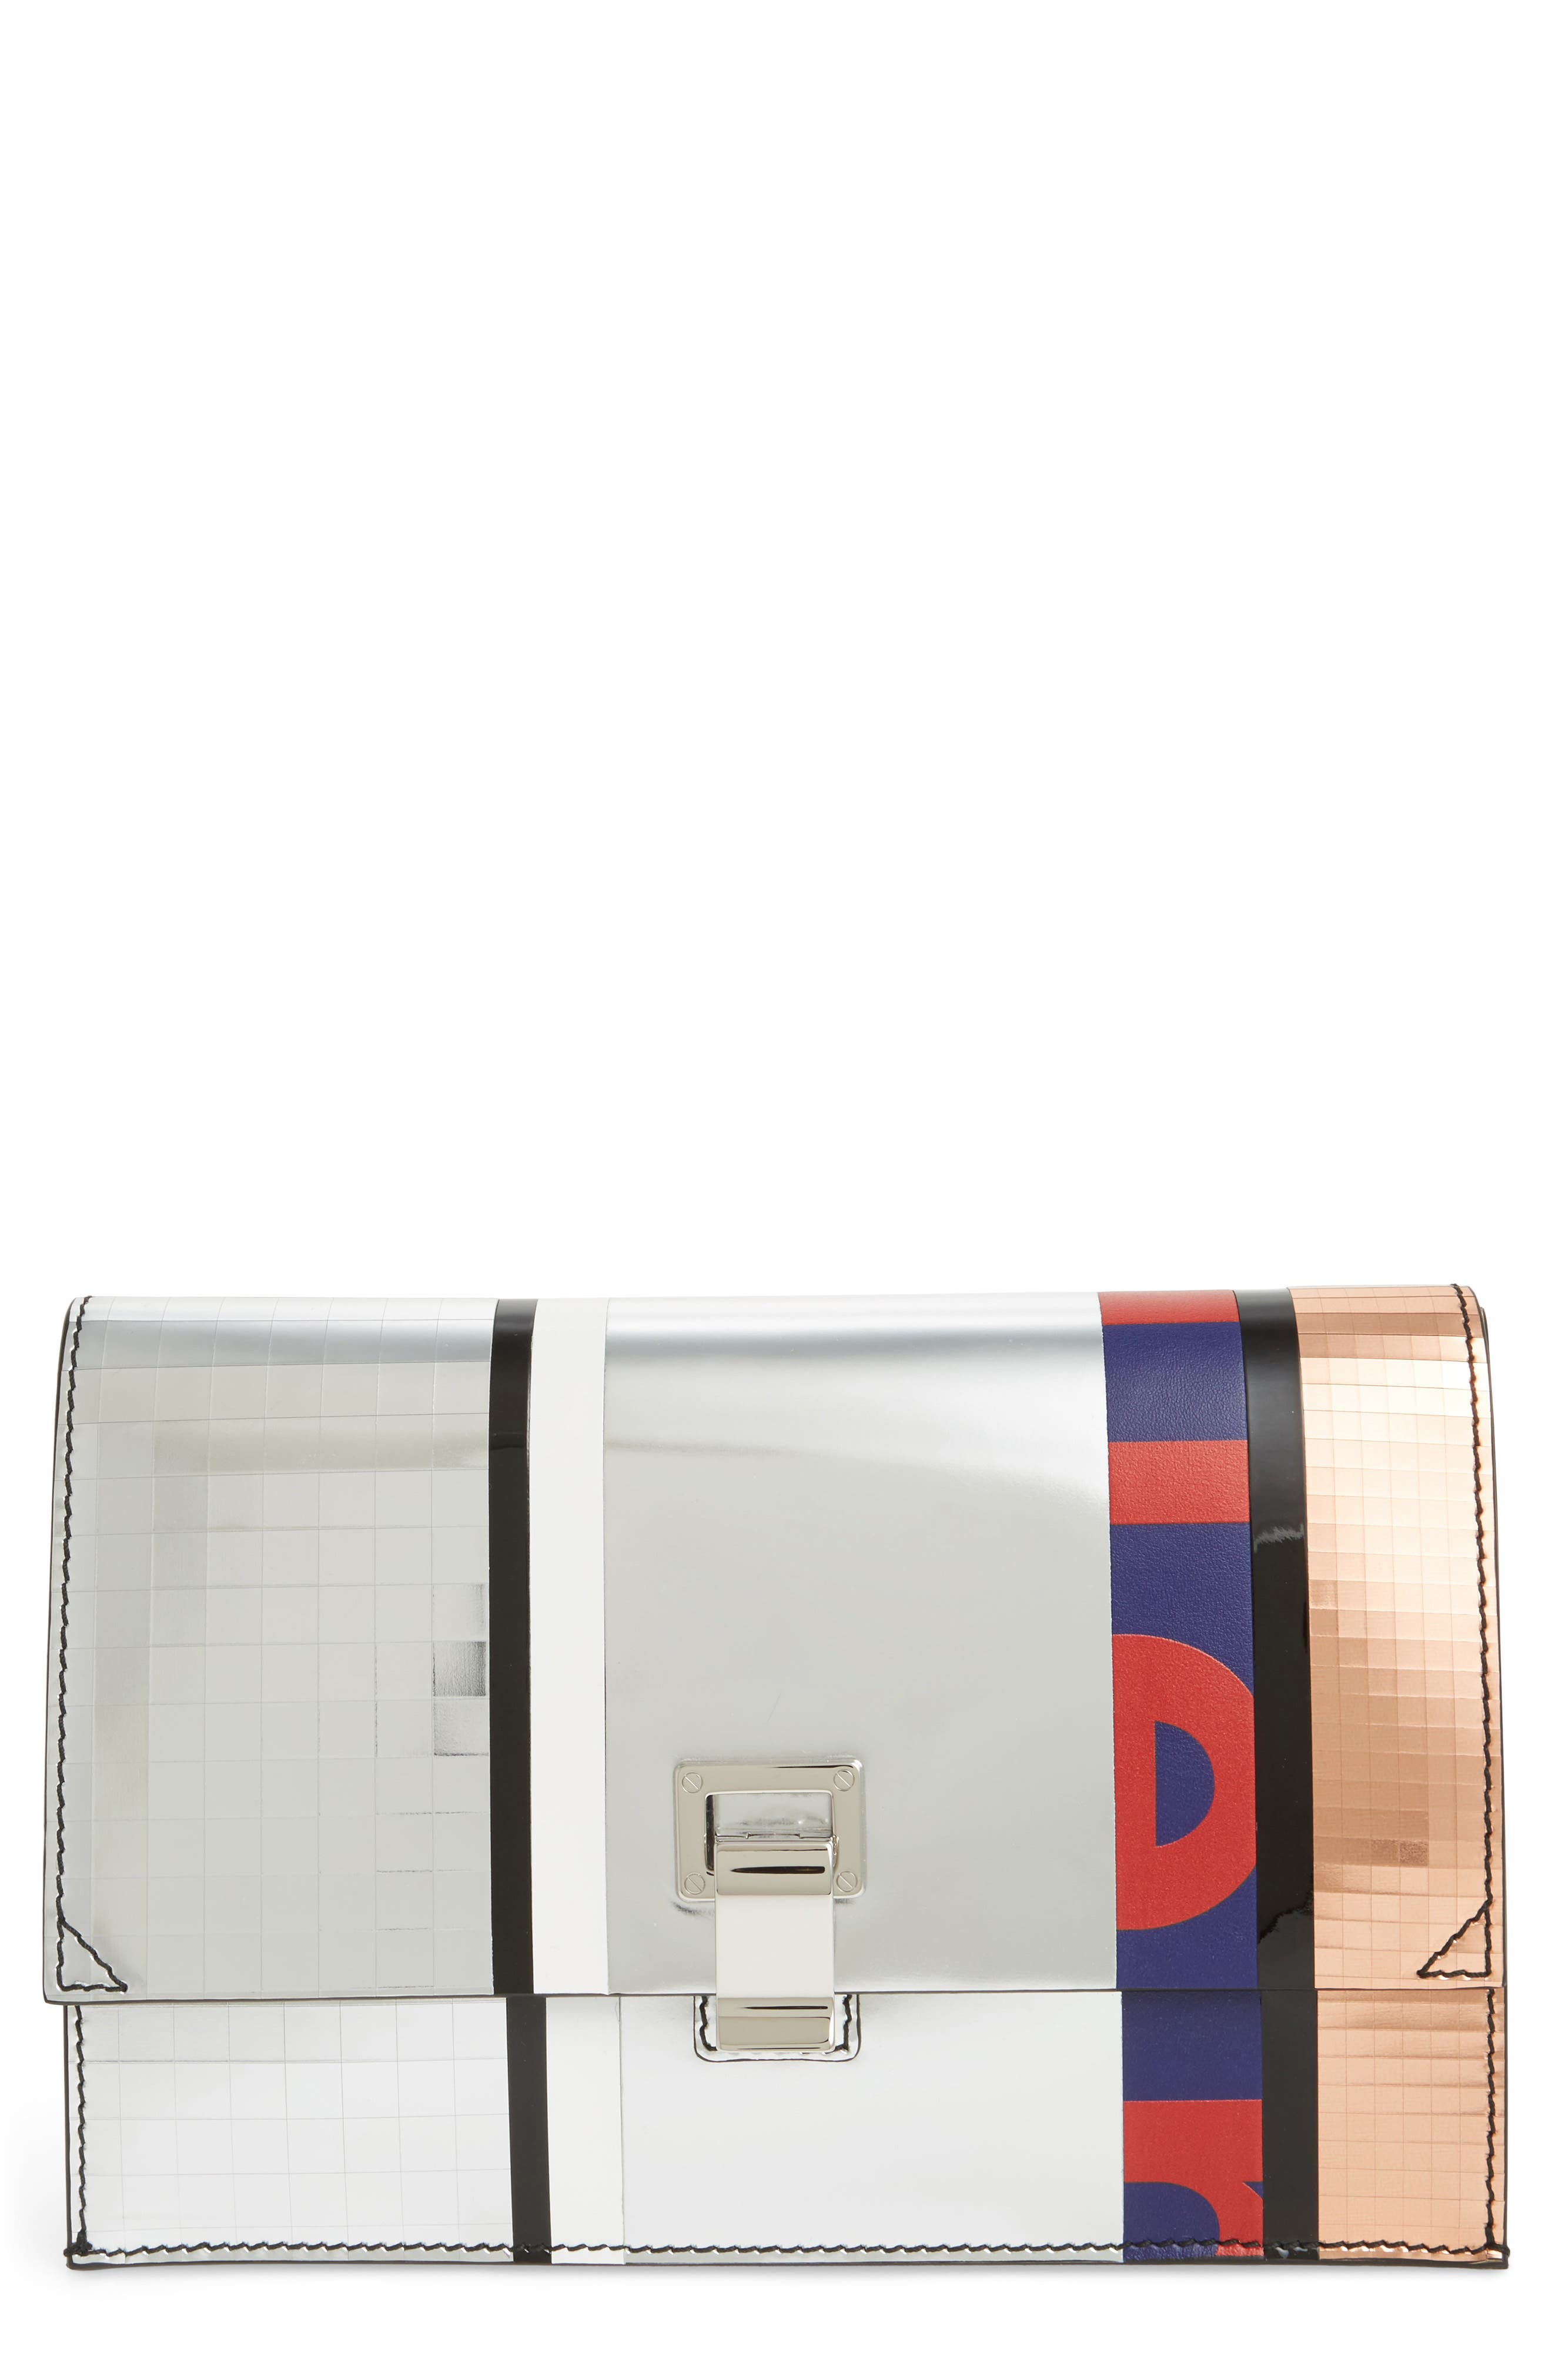 Alternate Image 1 Selected - Proenza Schouler Small Metallic Leather Lunch Bag Clutch